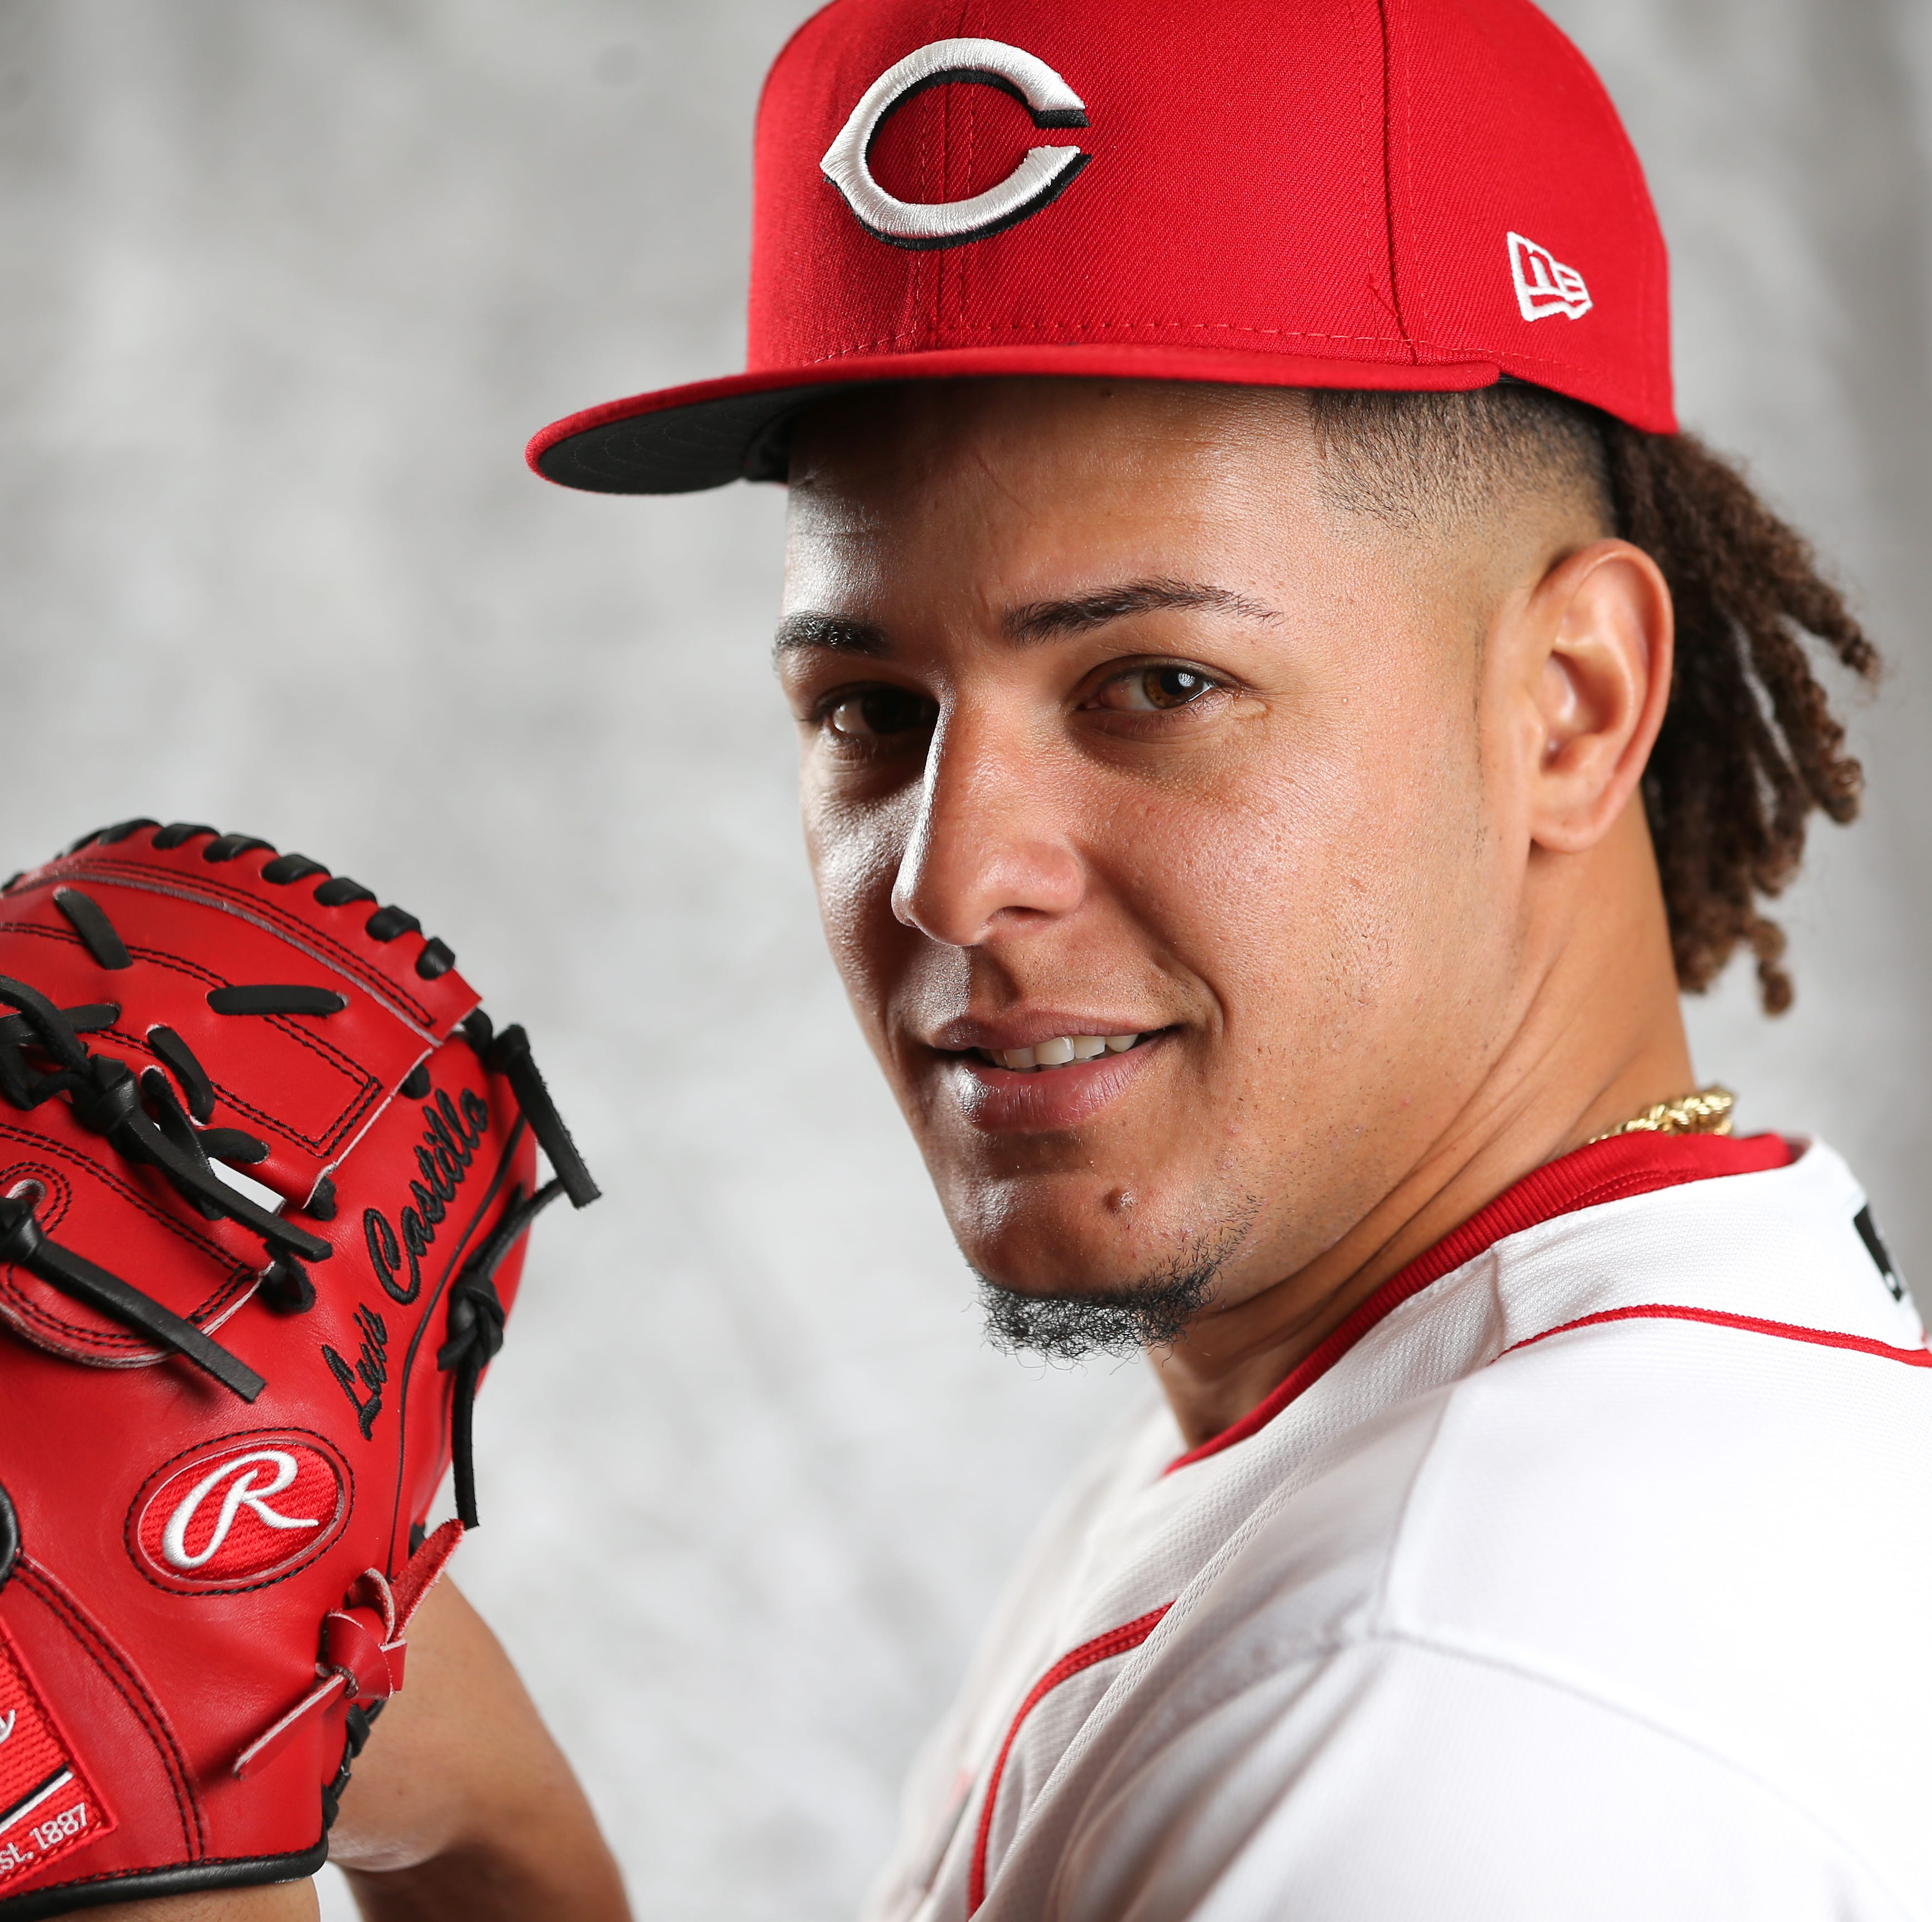 Luis Castillo named the Cincinnati Reds' Opening Day starter: 'Every starting pitcher dreams of this'